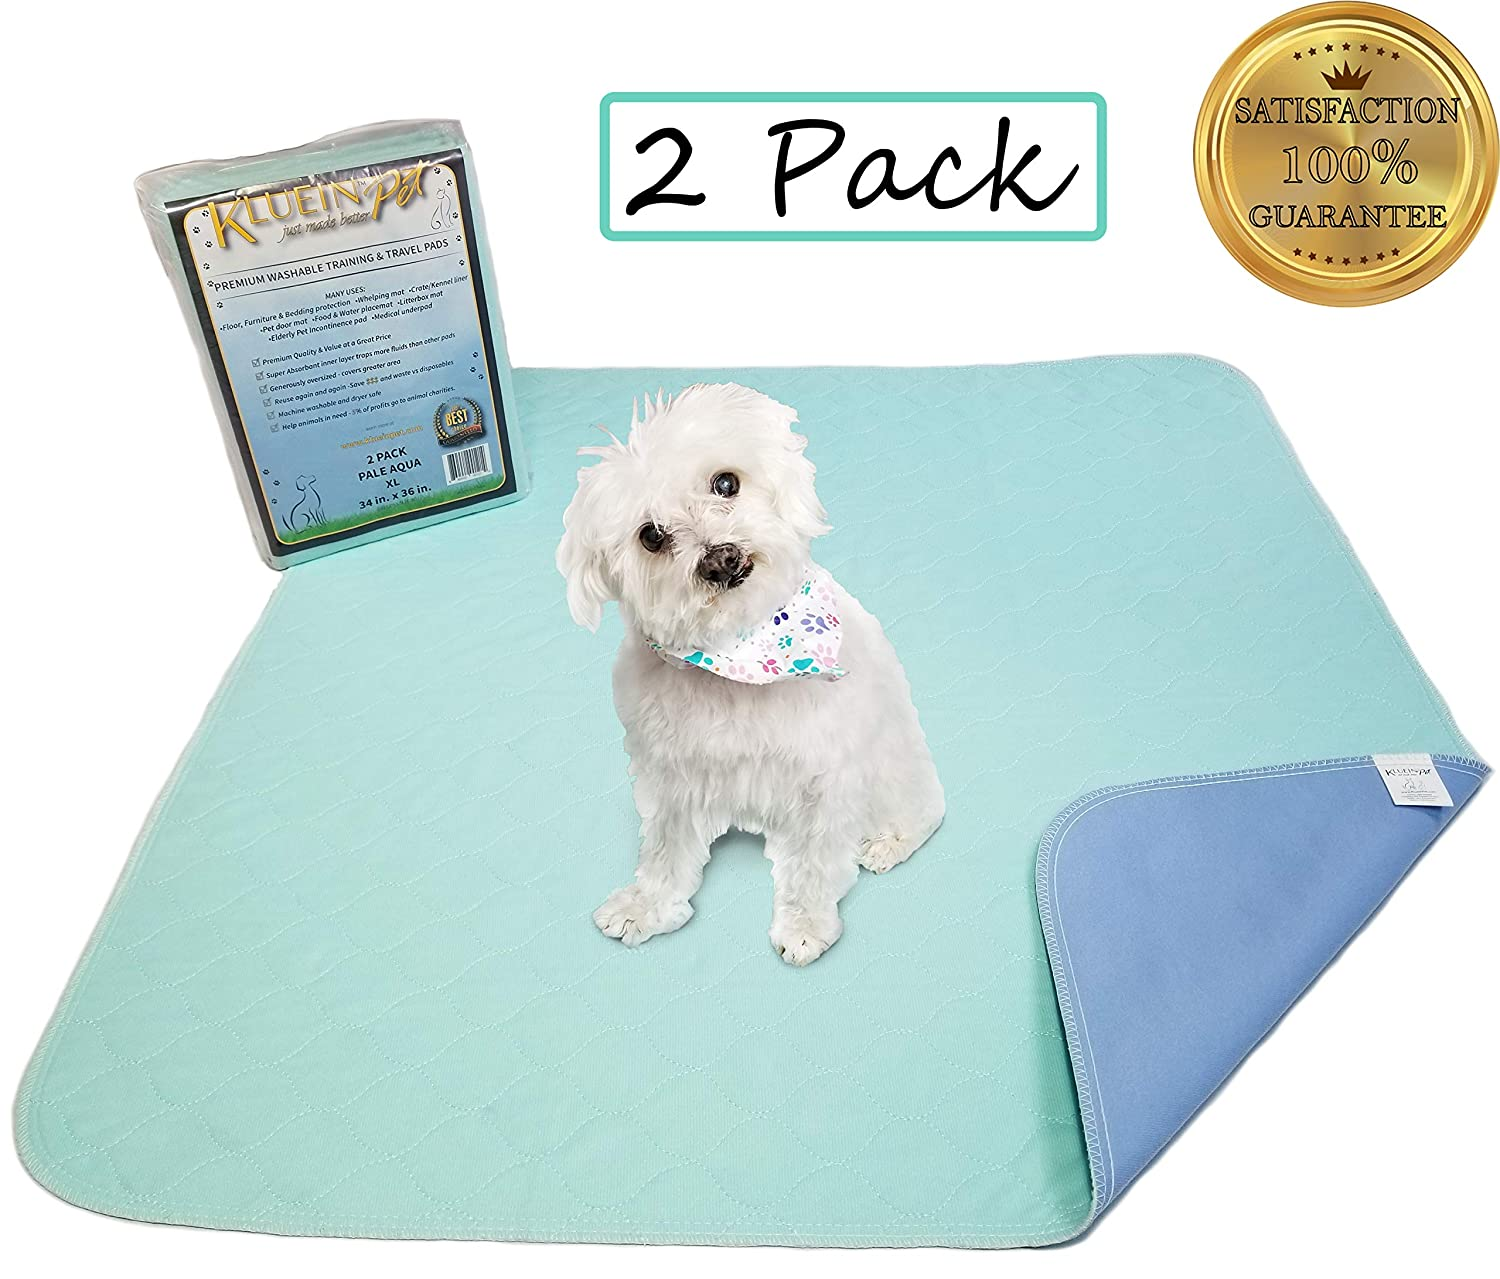 Aqua Kluein Pet Washable Pee Pads for Dogs & Puppies 2 Pack XL 34 x 36 inch, Aqua, Waterproof Reusable Wee Wee Pads; Puppy Playpen; Potty Training, Whelping; Dog Crate; Housebreaking